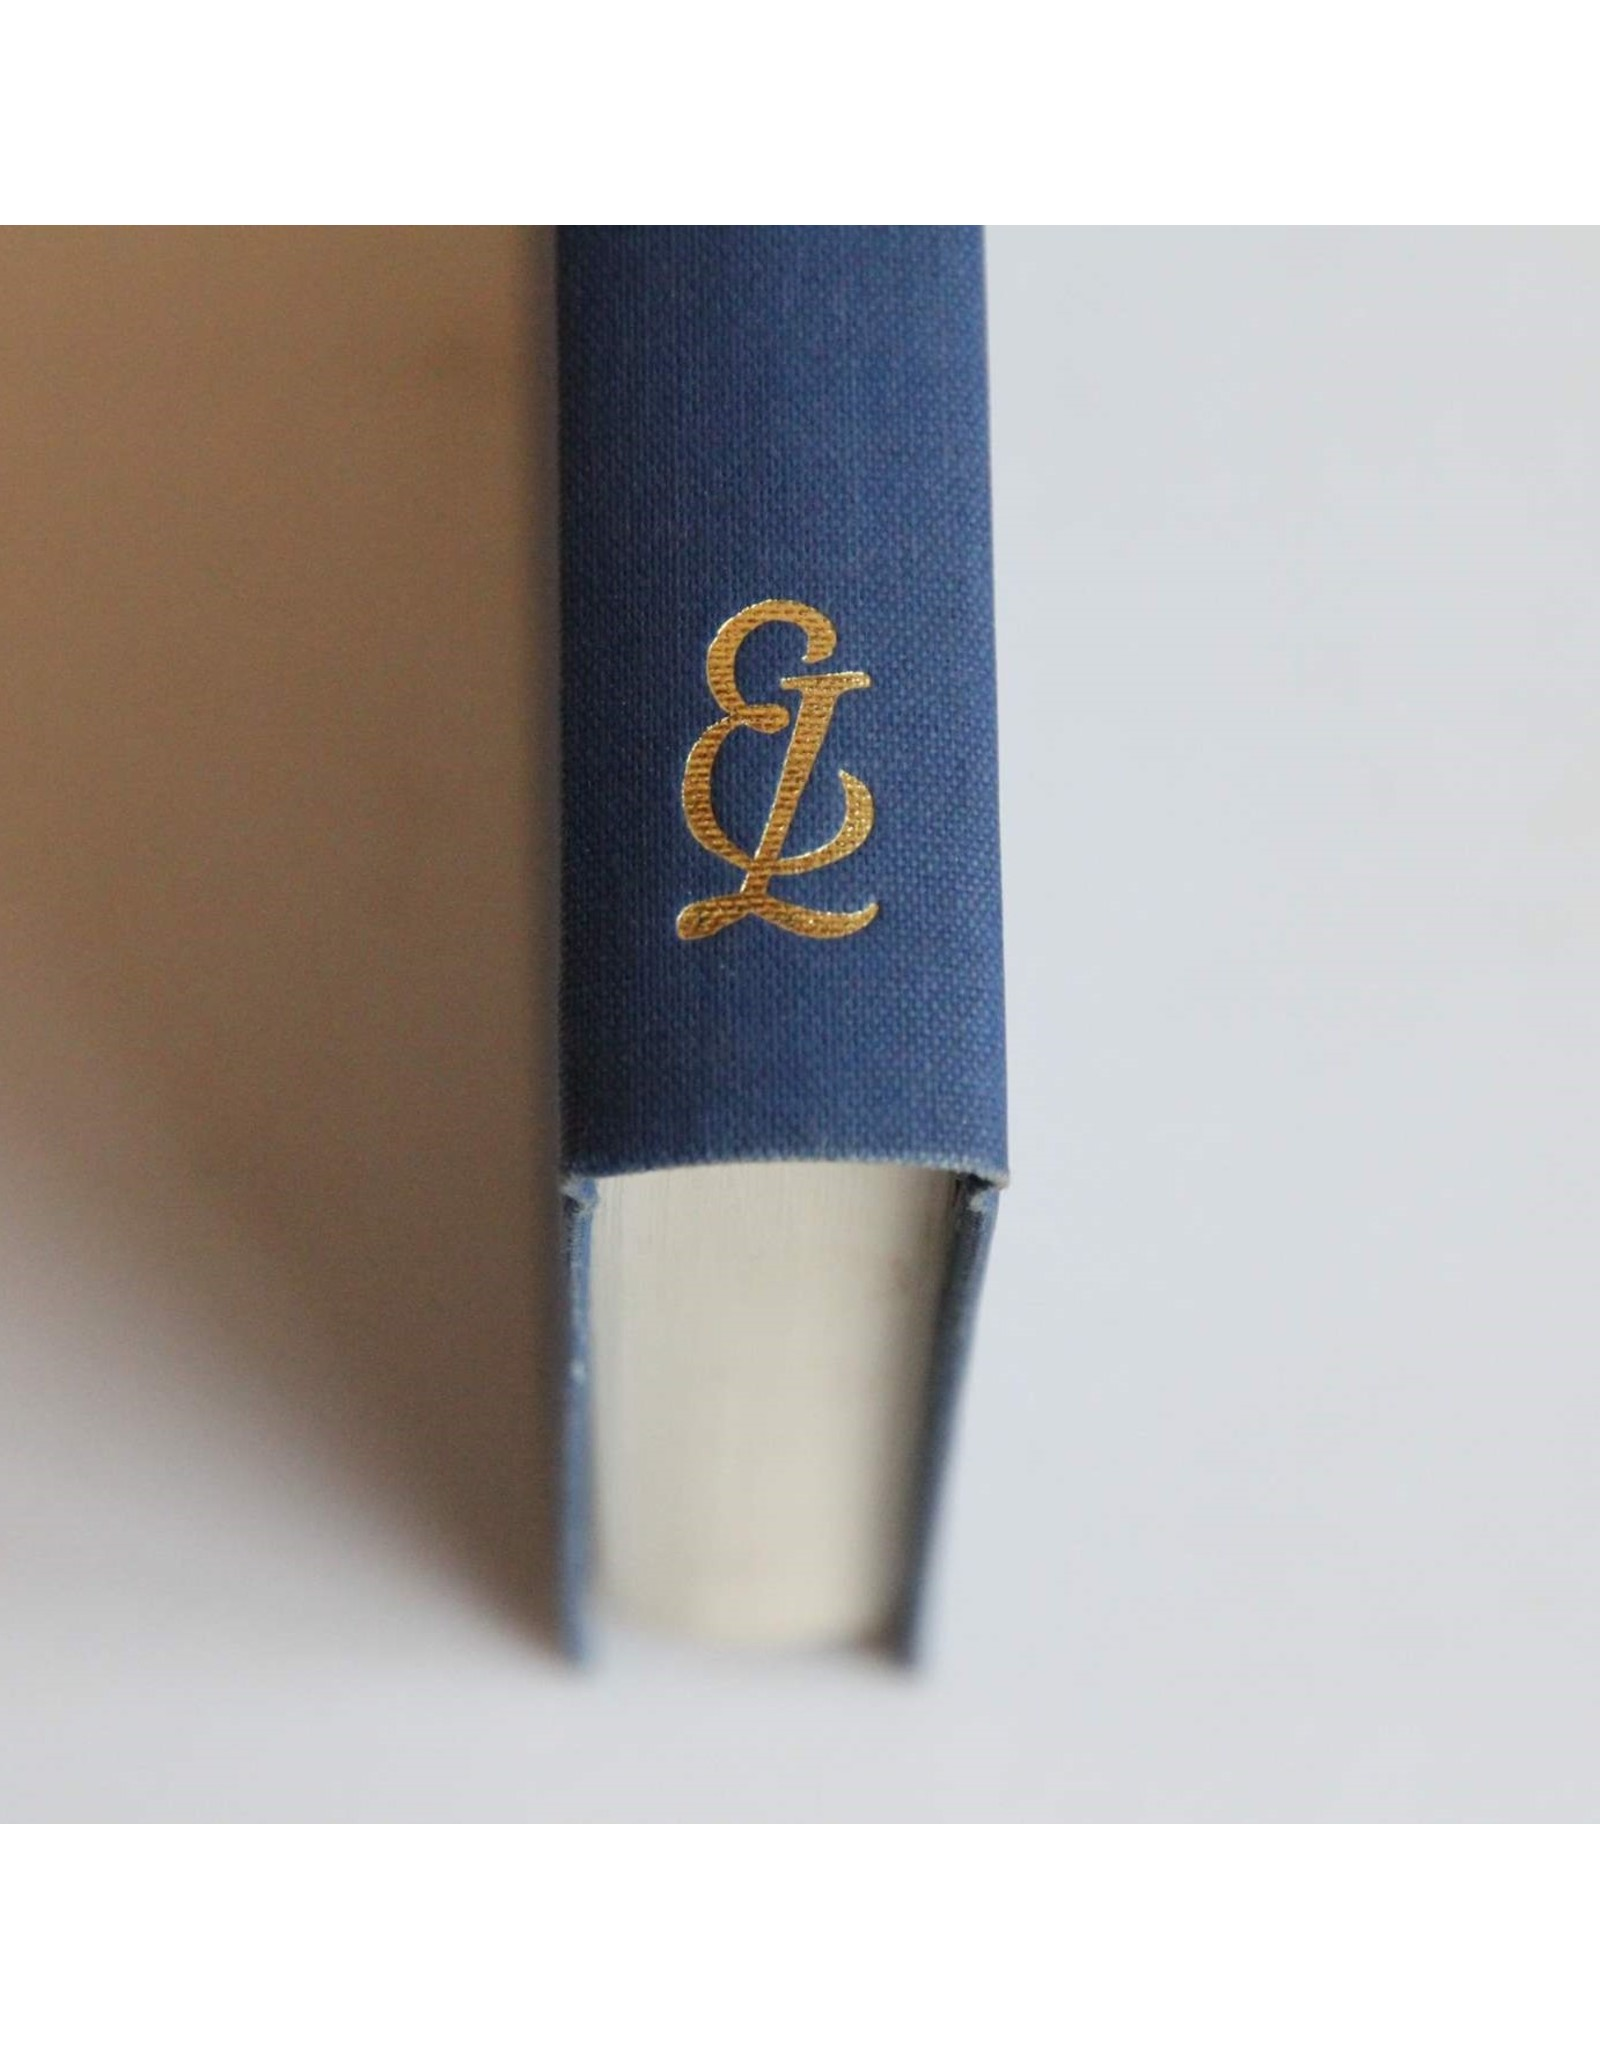 Hardcover book - Rousseau